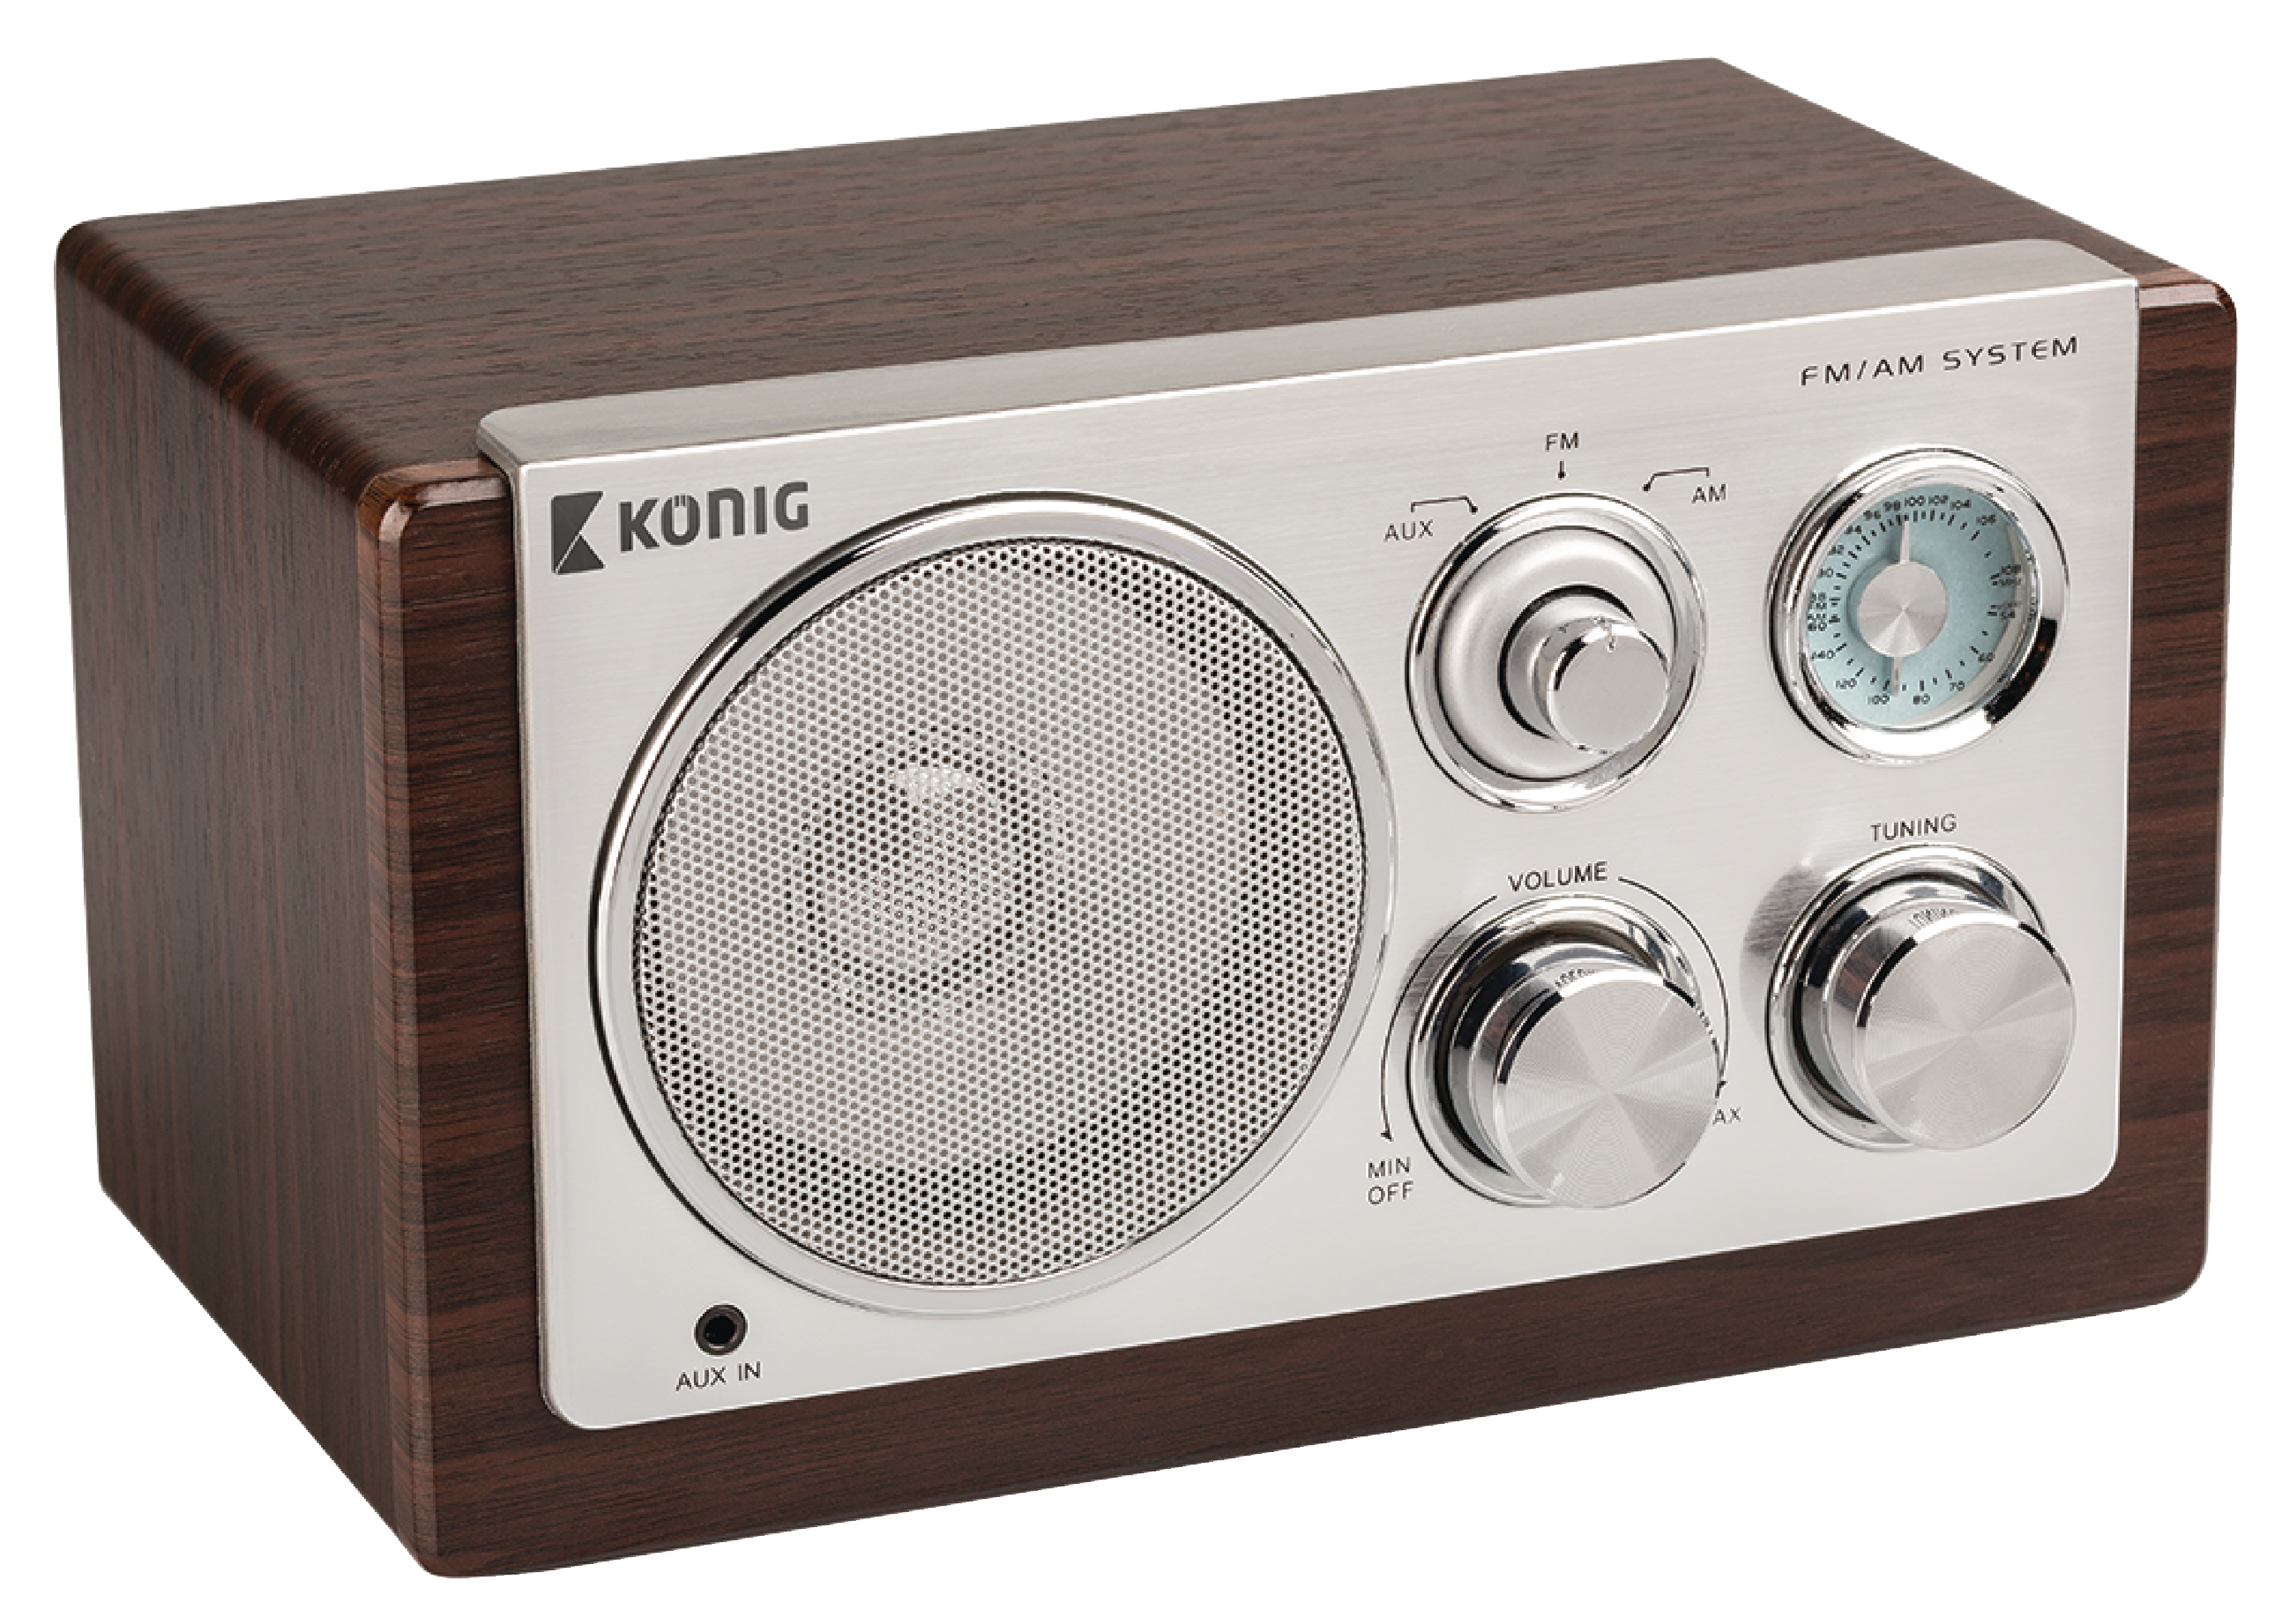 hav tr1000 k nig table radio retro fm am 3 w brown electronic. Black Bedroom Furniture Sets. Home Design Ideas